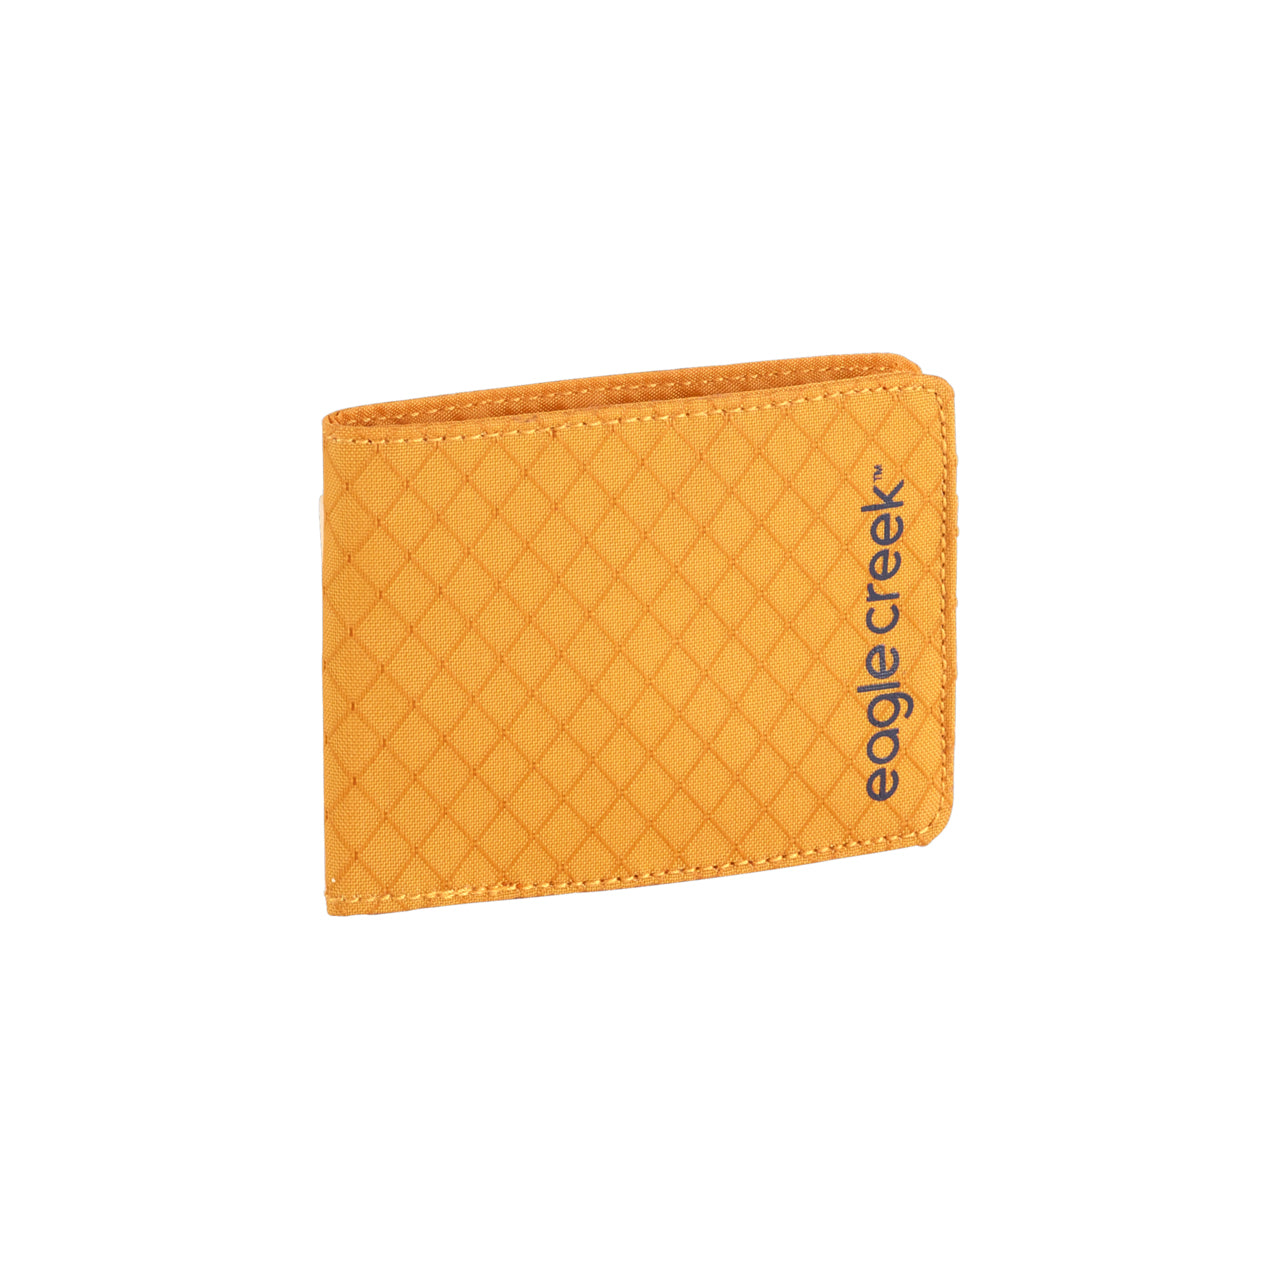 Unisex Eagle Creek RFID Bi-Fold Wallet in Sahara Yellow from the front